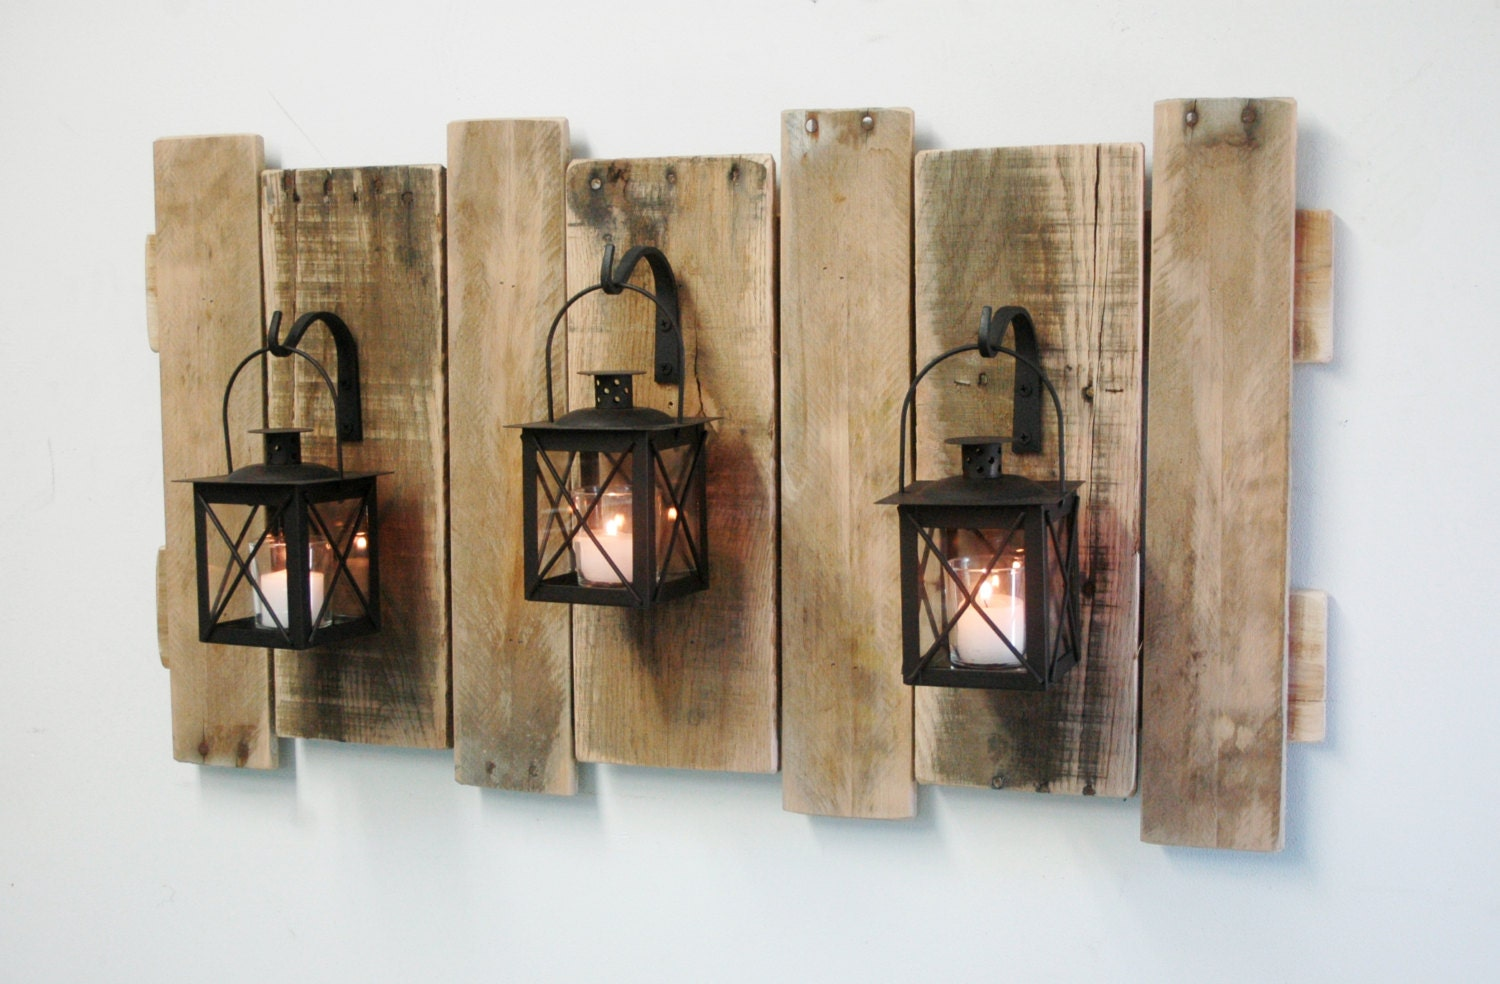 Rustic Photo Wall Decor : Farmhouse style pallet wall decor with lanterns french